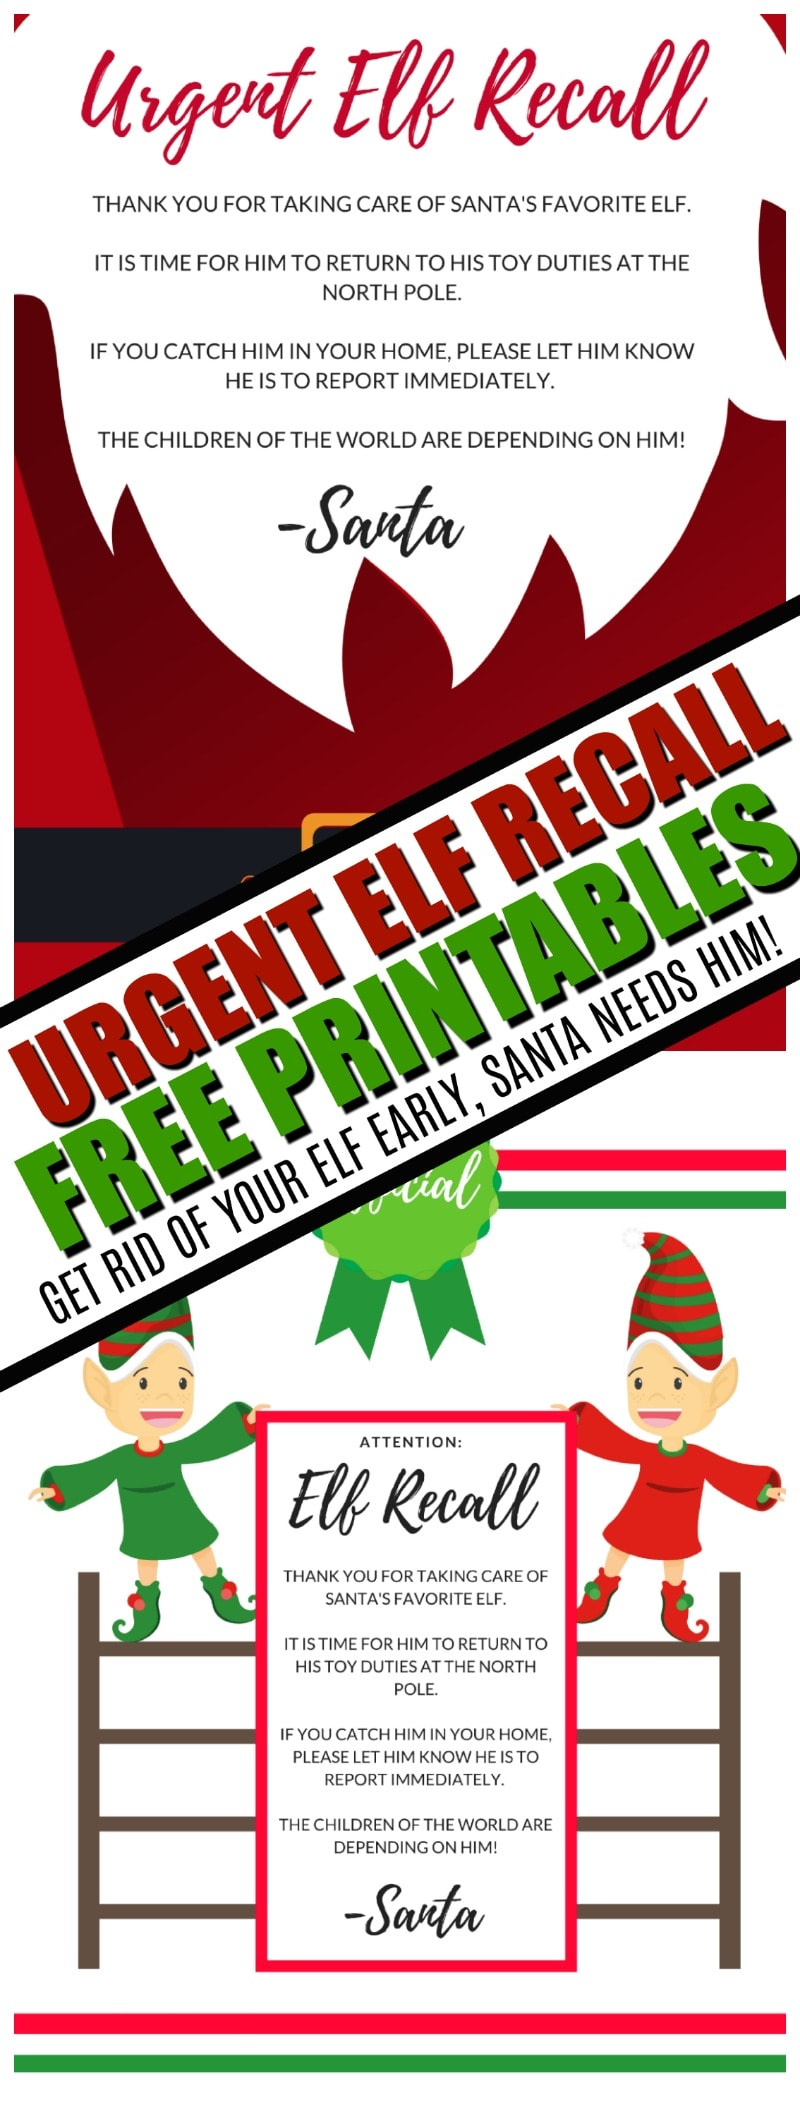 Urgent Elf Recall : Get rid of your Elf Early with an official Elf Recall notice from Santa!